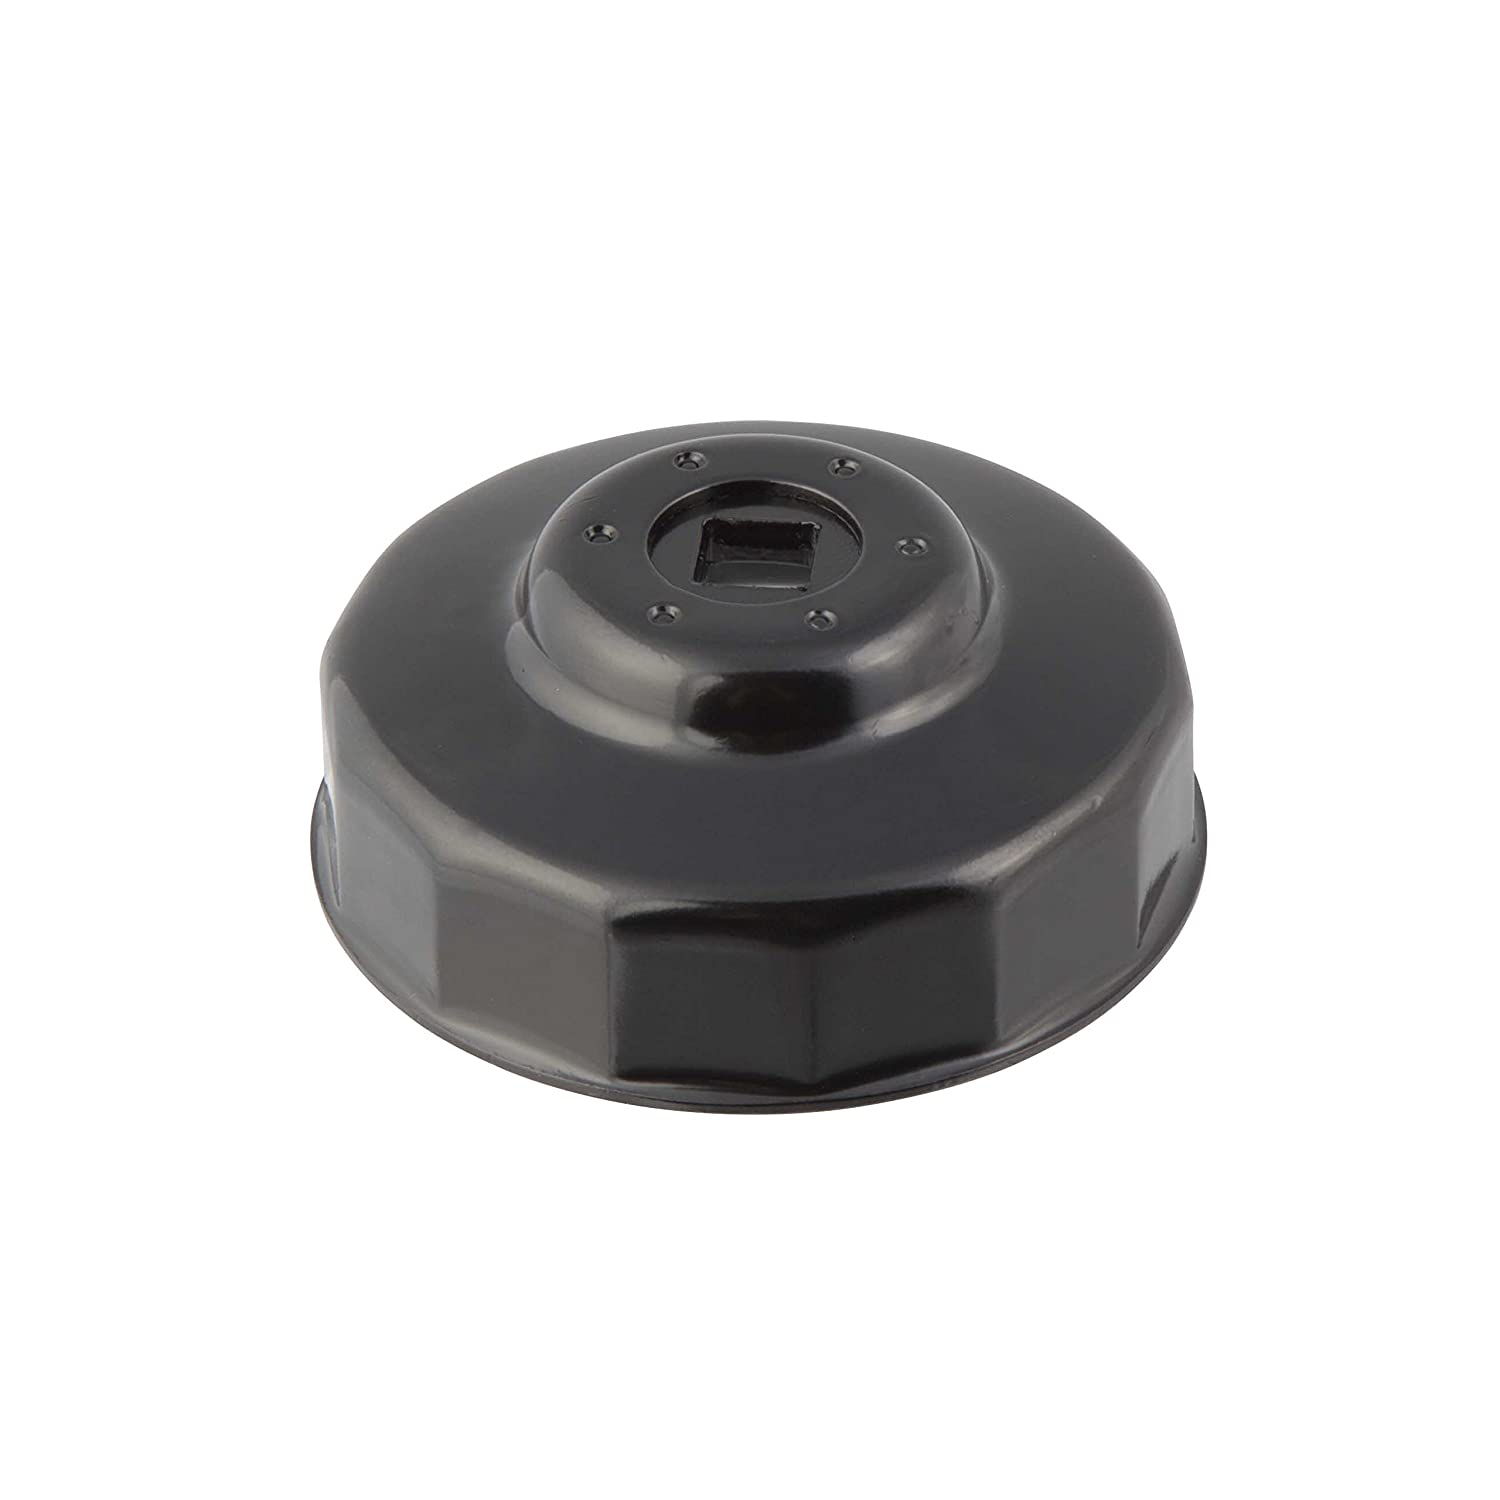 Steelman 06139 Oil Filter Cap Wrench 74mm x 14 Flute